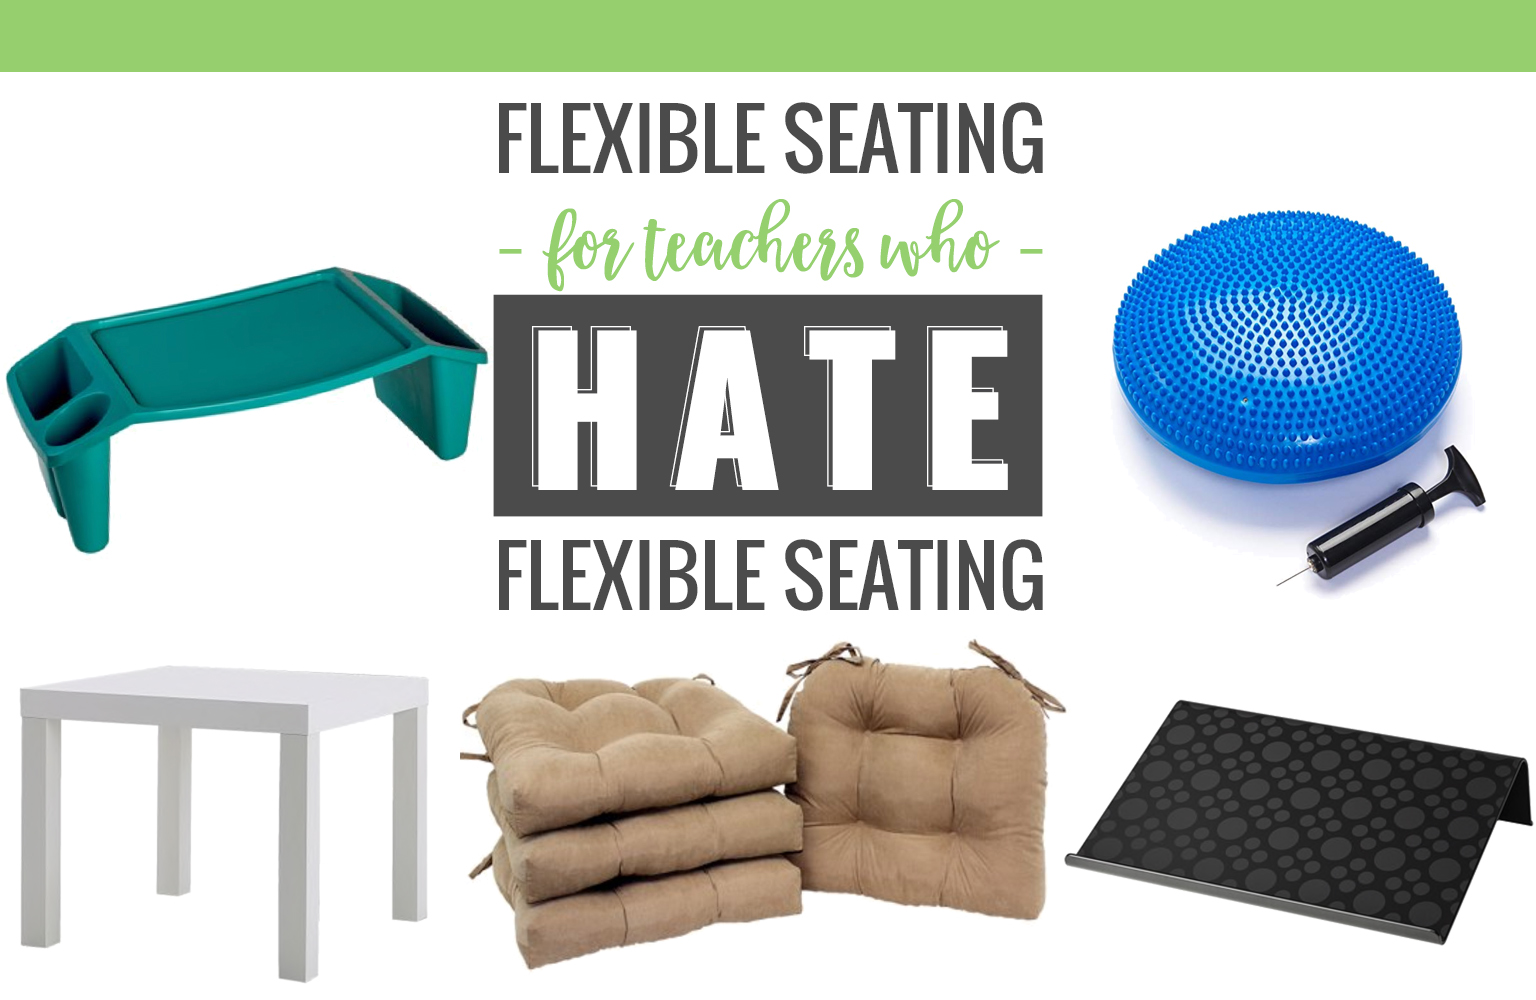 Not ready to jump on board with flexible seating and clear out your desks and chairs? Here are some inexpensive ways to still offer students choice without rearranging your entire classroom!